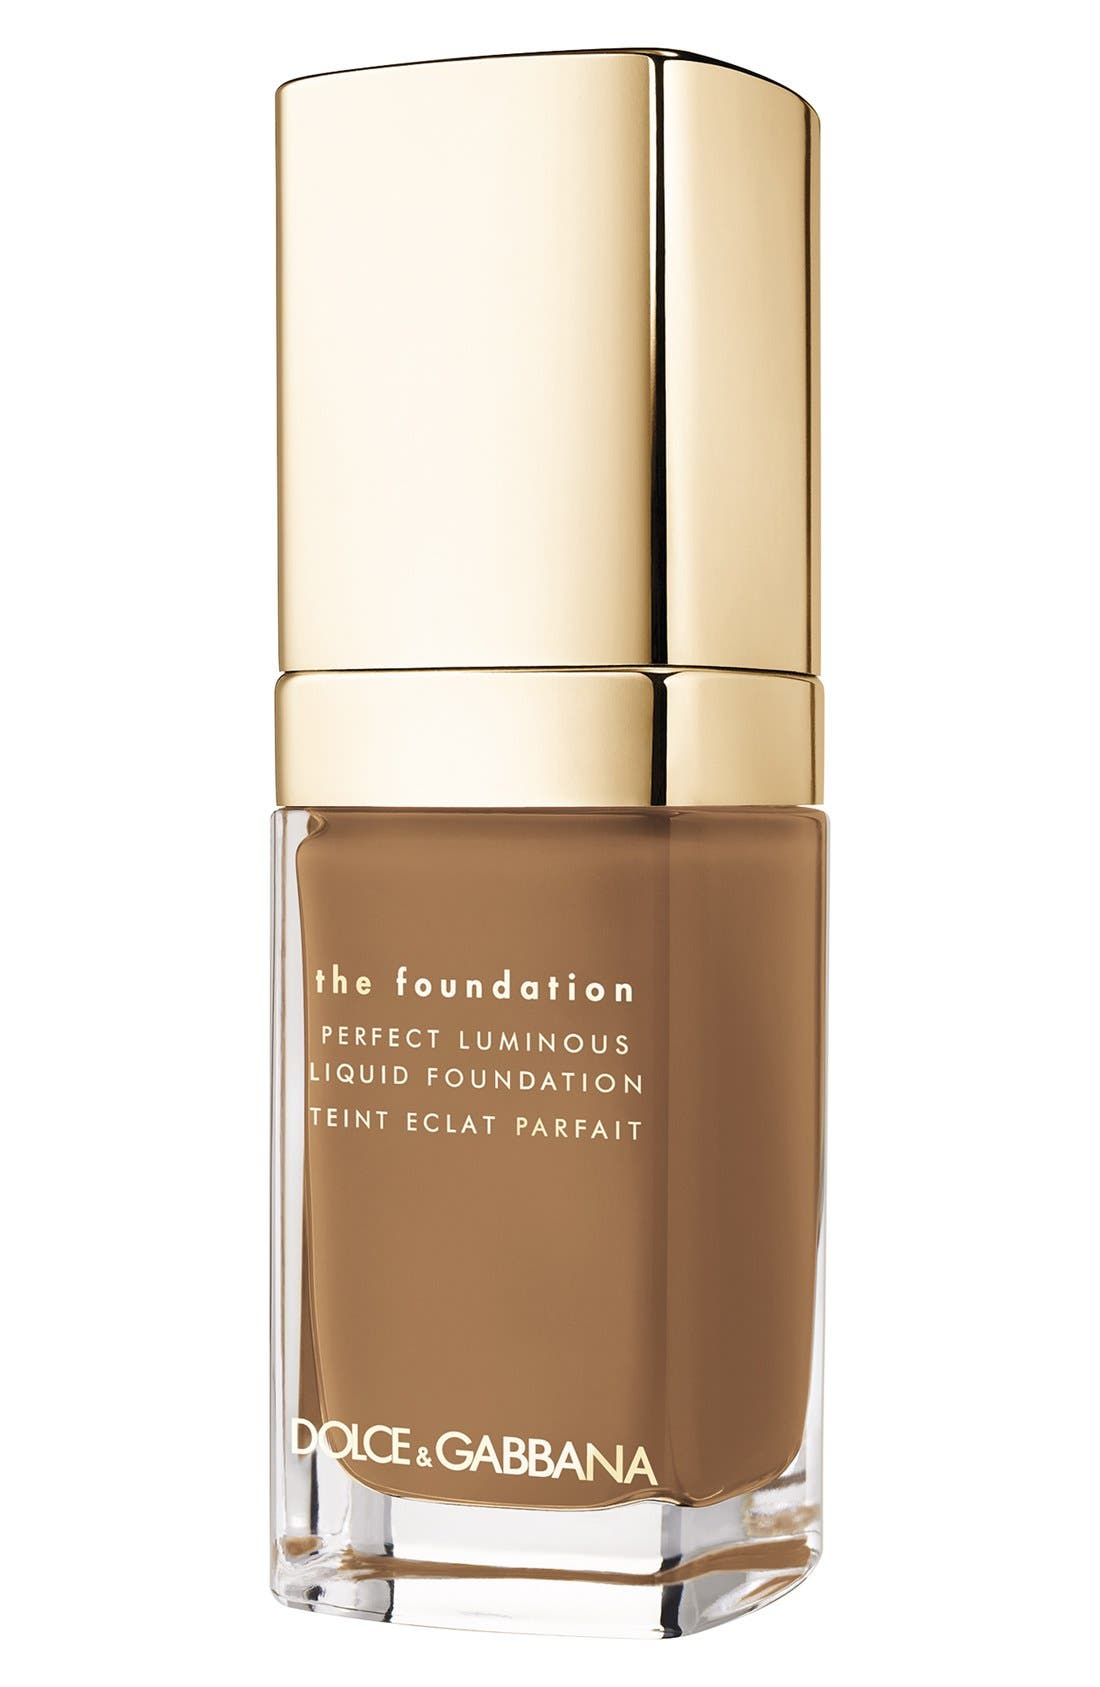 Dolce&Gabbana Beauty Perfect Luminous Liquid Foundation